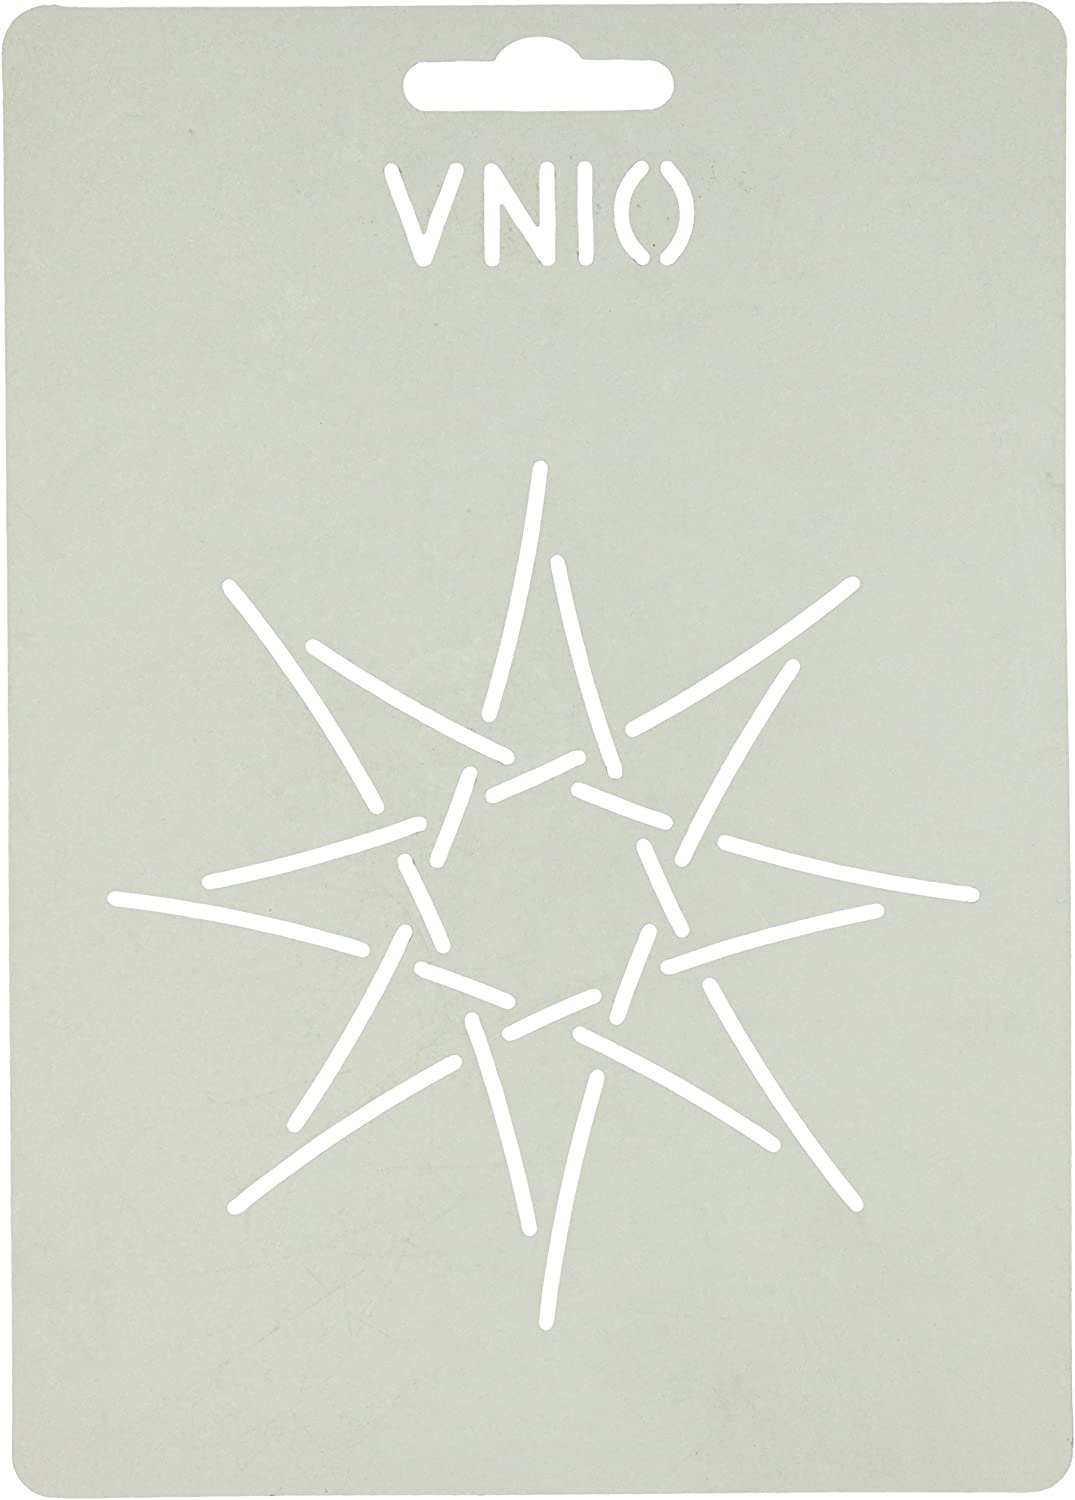 4 Ranking integrated 1st place Star Quilting Stencil Max 83% OFF